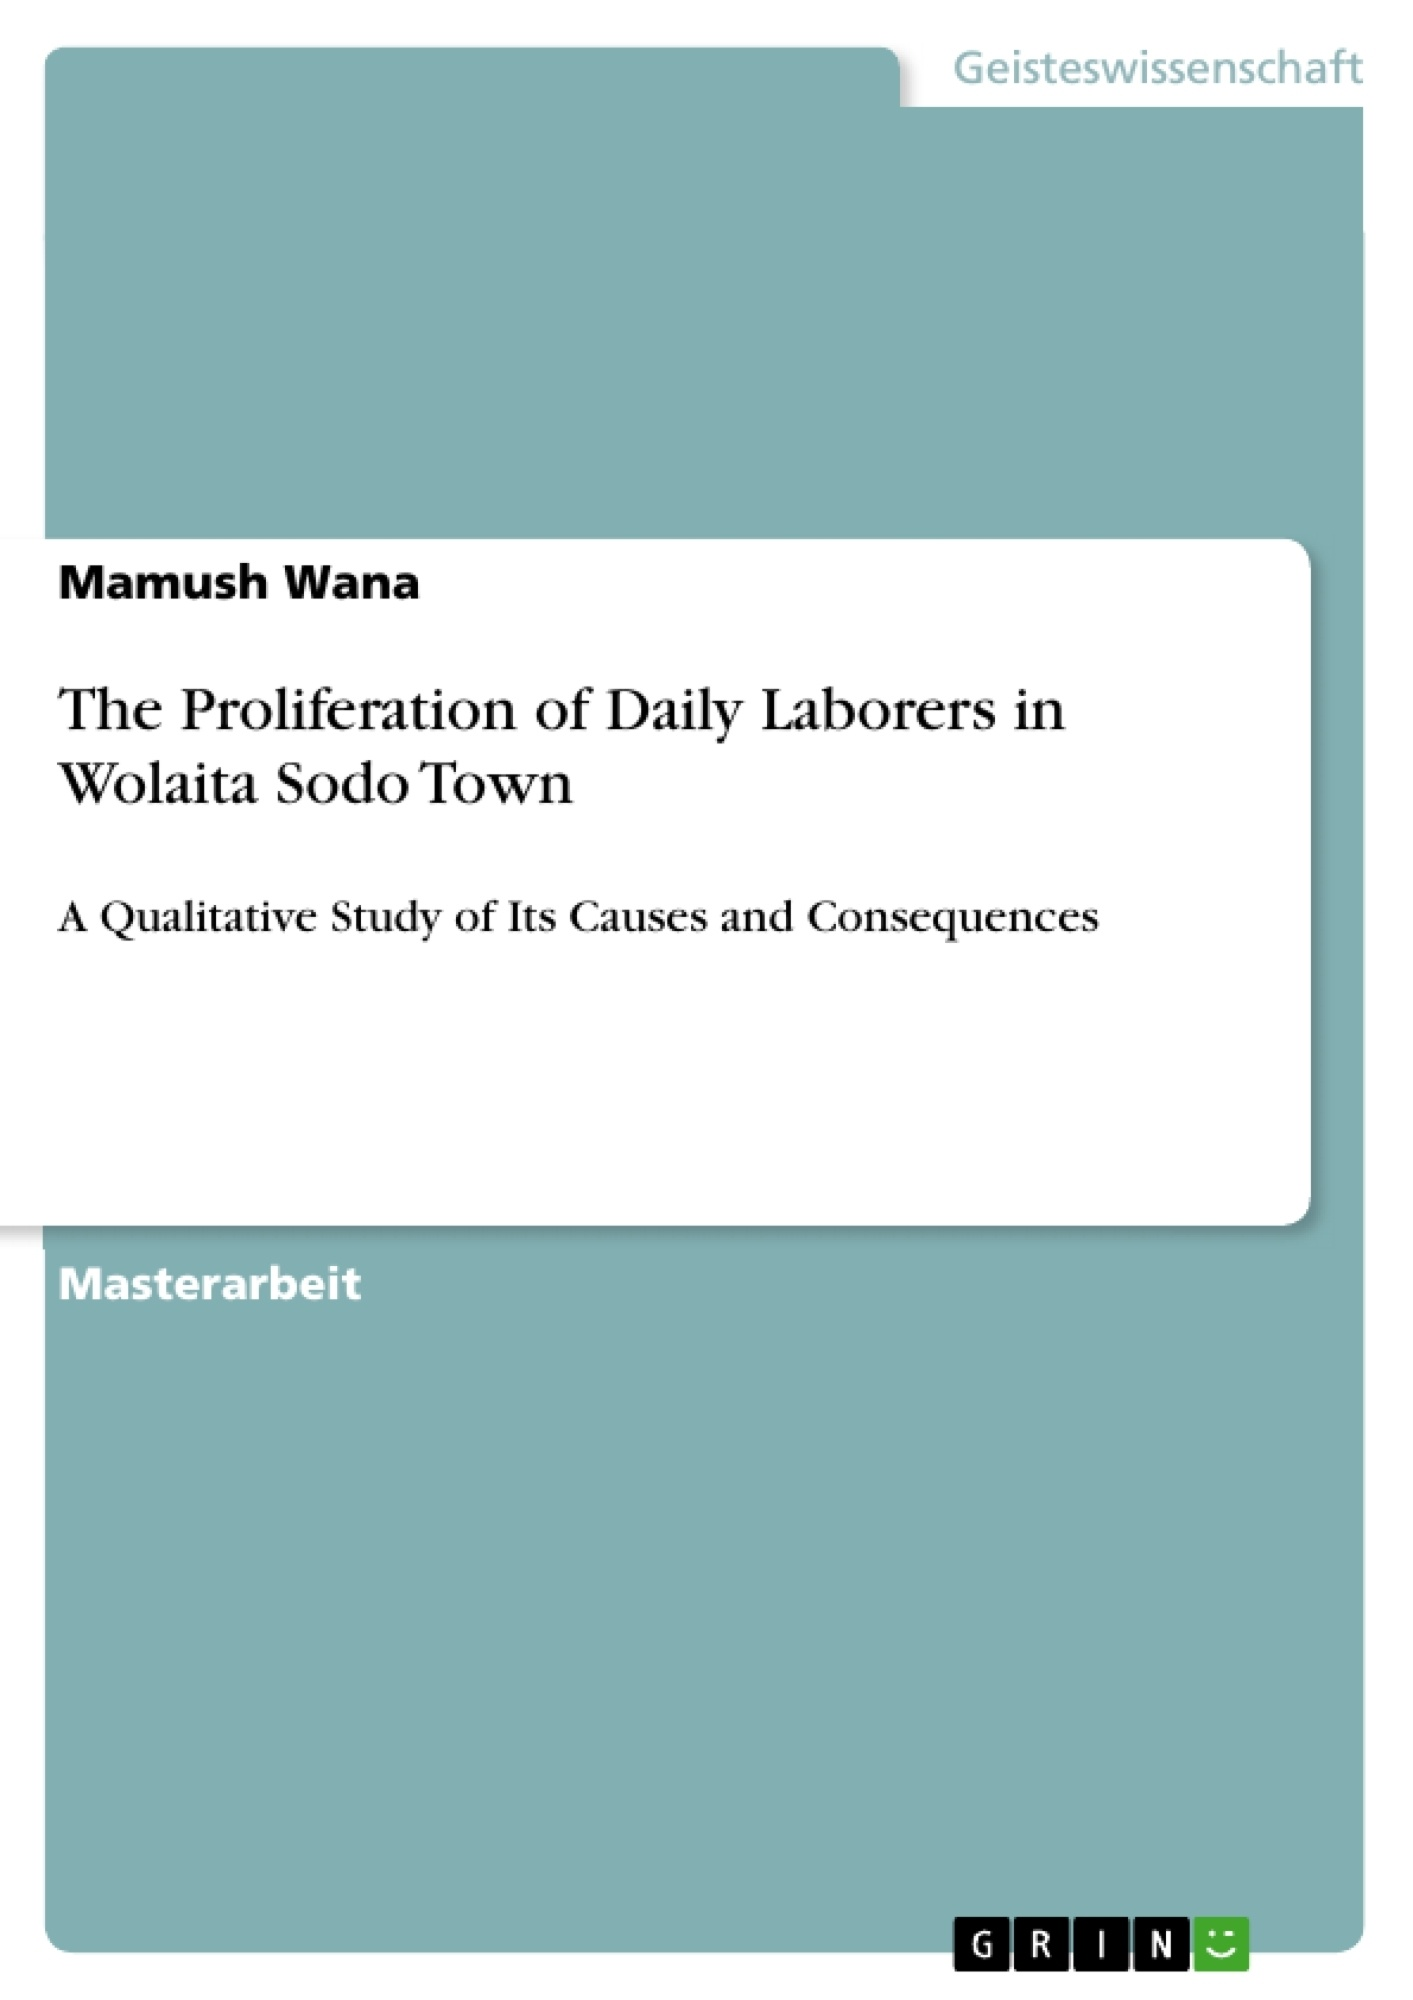 Titel: The Proliferation of Daily Laborers in Wolaita Sodo Town